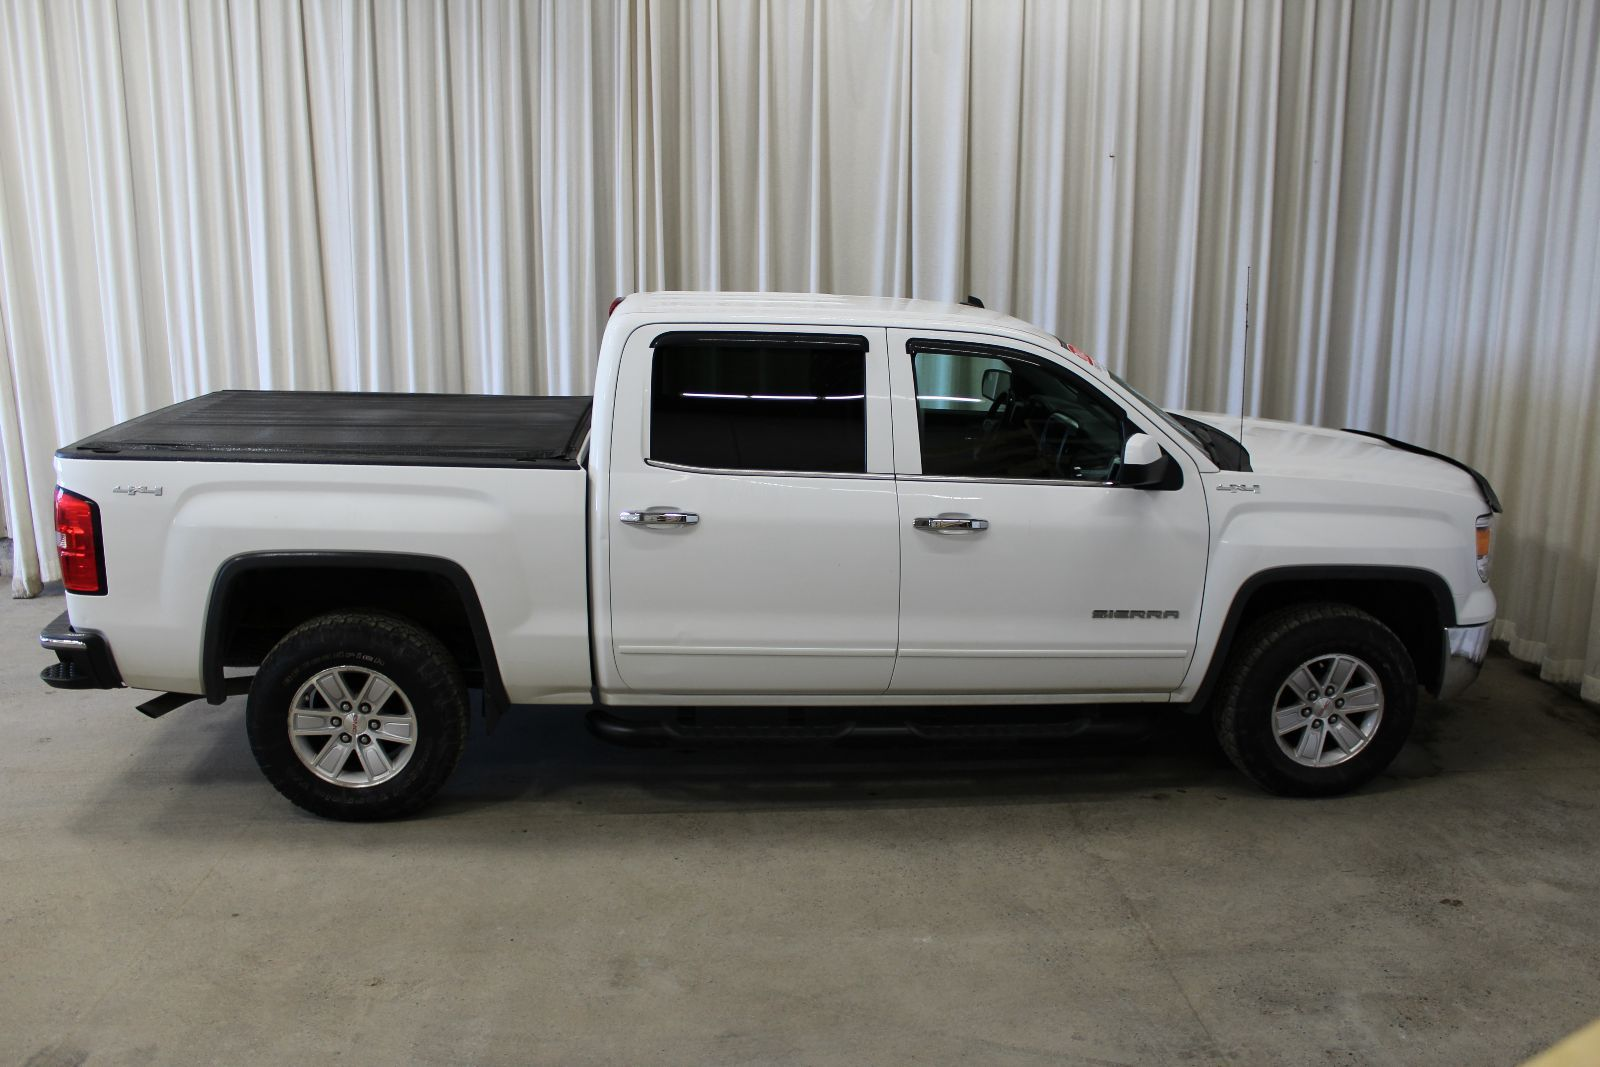 used 2014 gmc sierra 1500 sle 5 3l 8 cyl automatic 4x4 crew cab in middleton g17515a. Black Bedroom Furniture Sets. Home Design Ideas